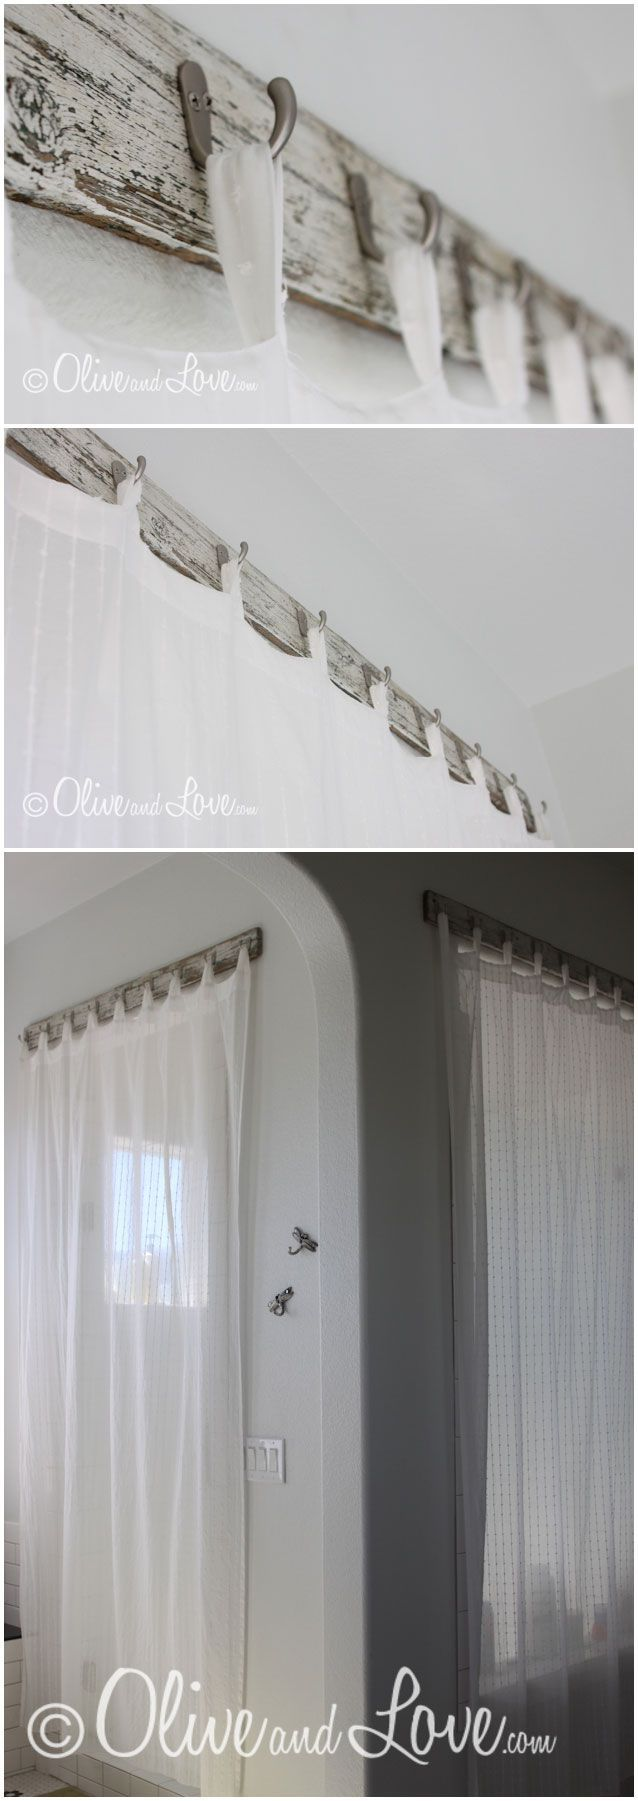 Top 10 Decorative Diy Curtain Designs Stylish Curtain Rod Home